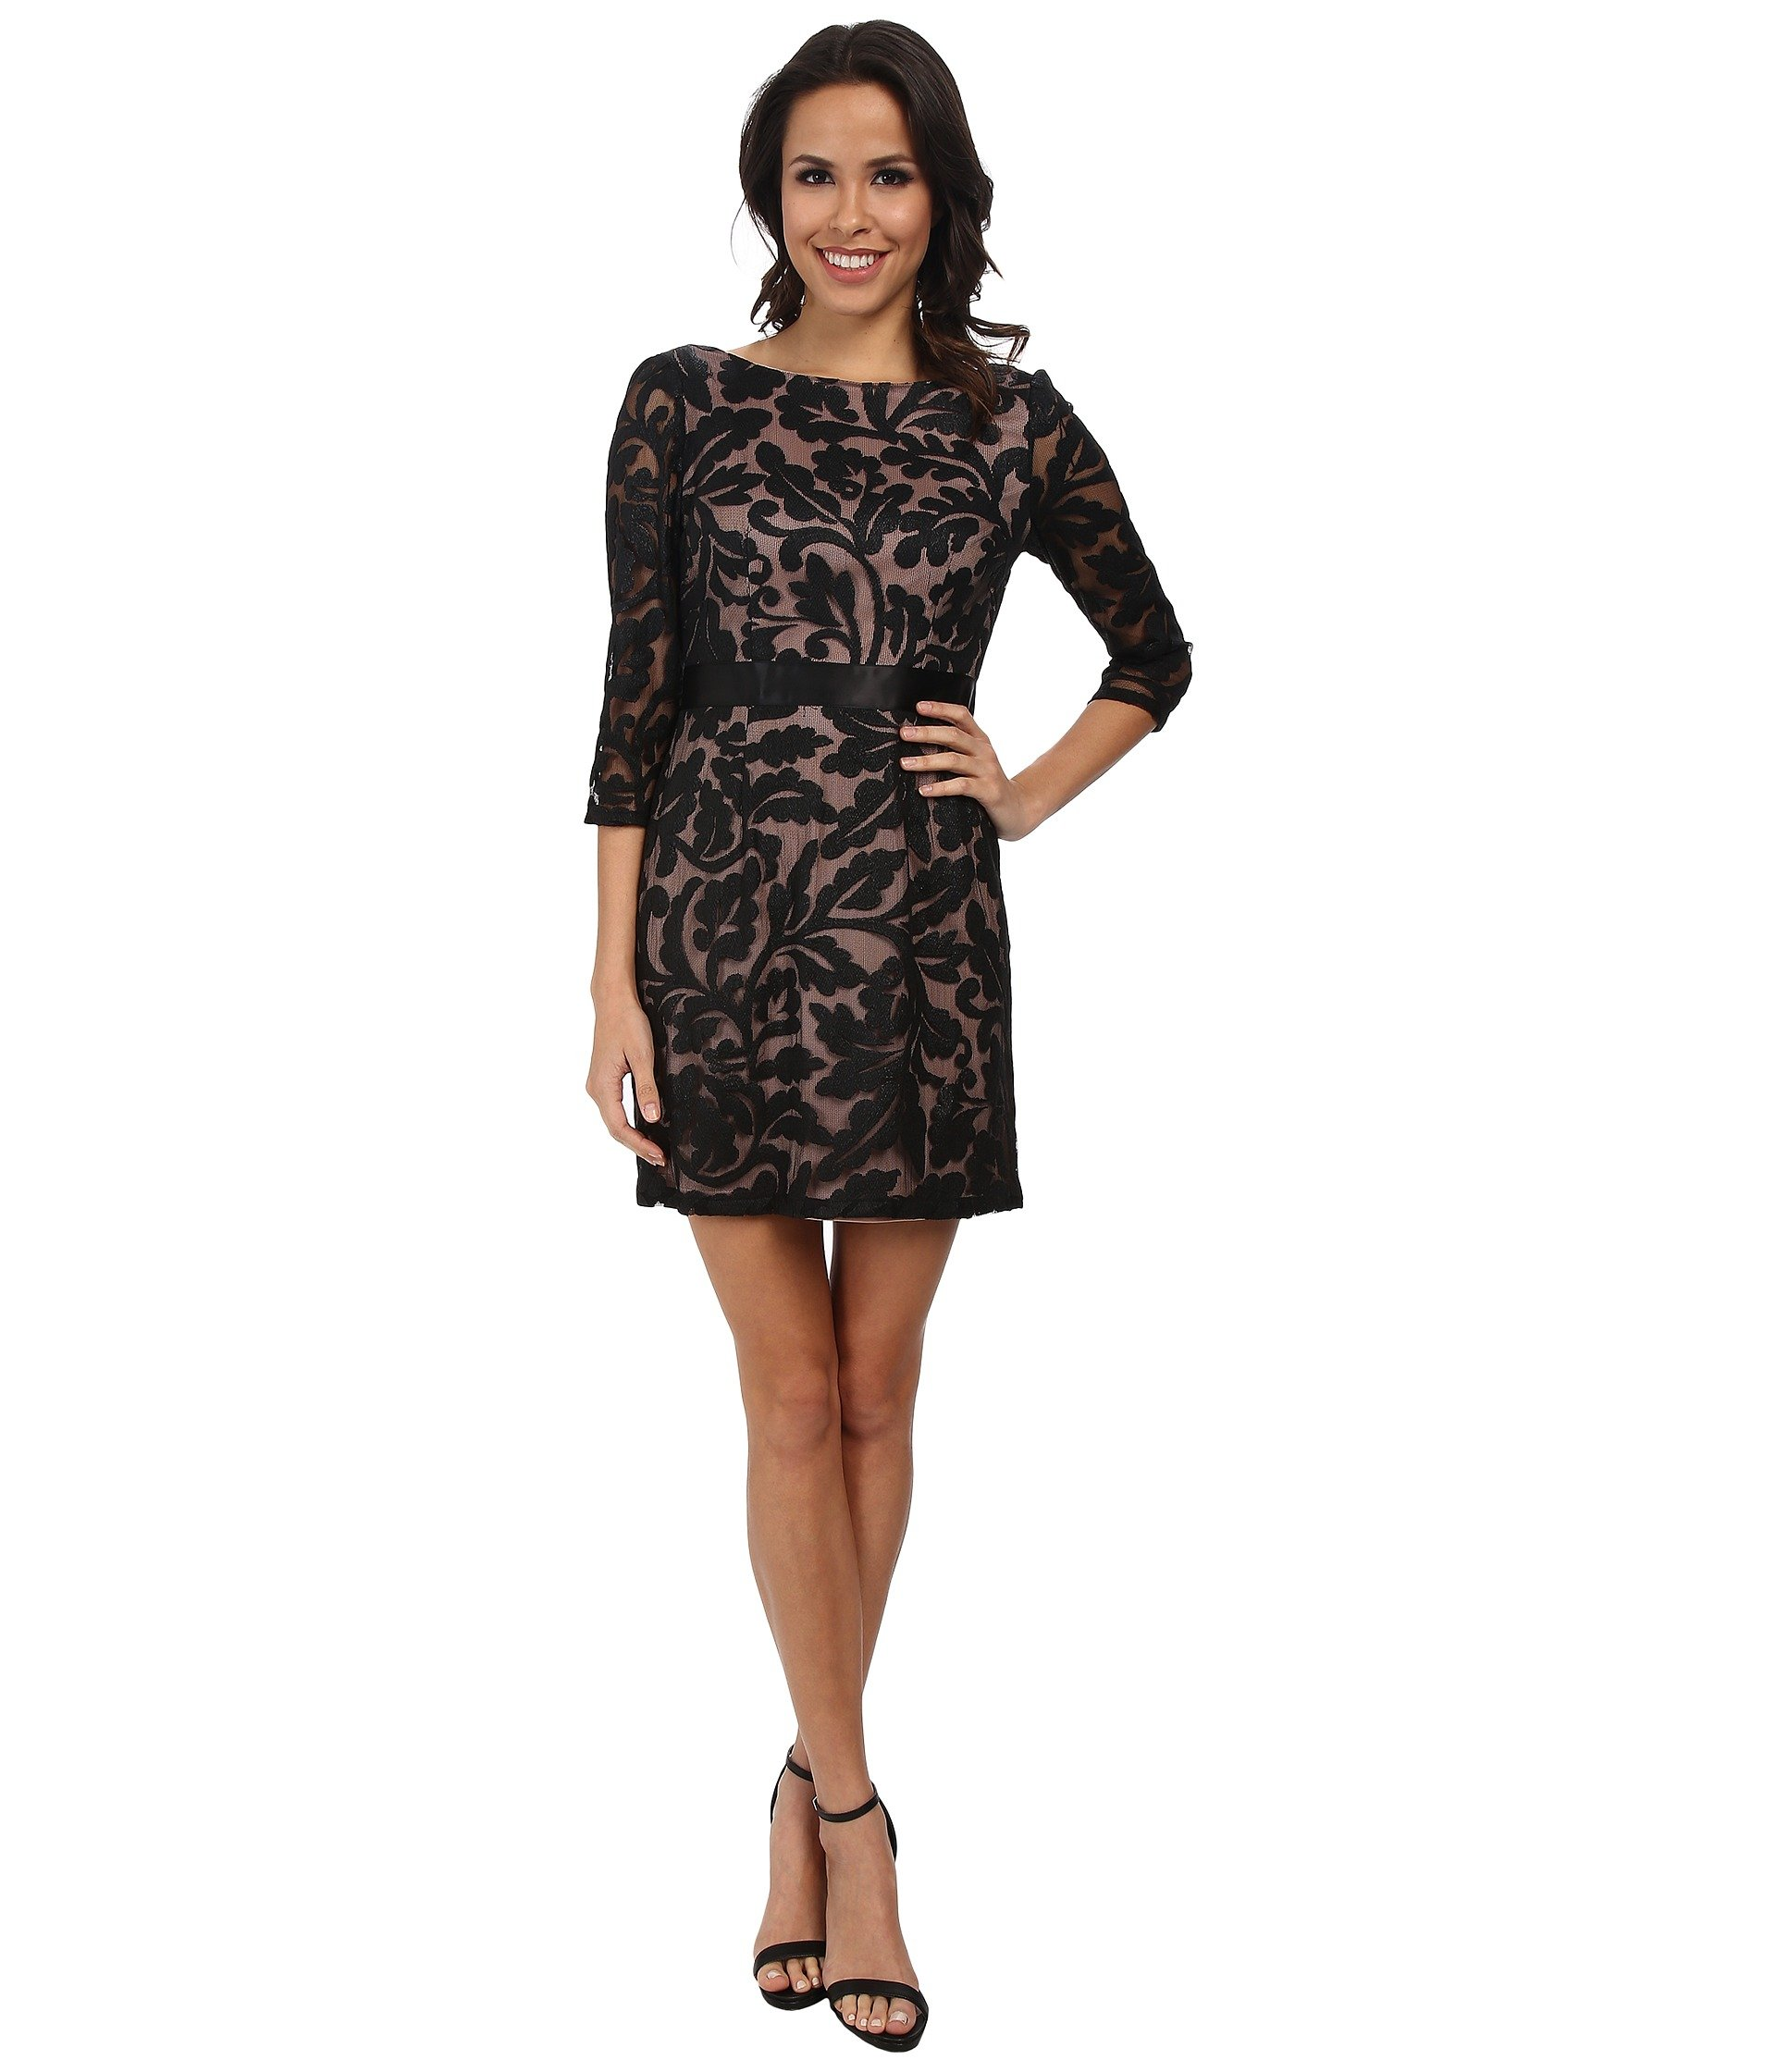 ... papell 3/4 Sleeve Embroidered Lace Cocktail Dress in Black | Lyst